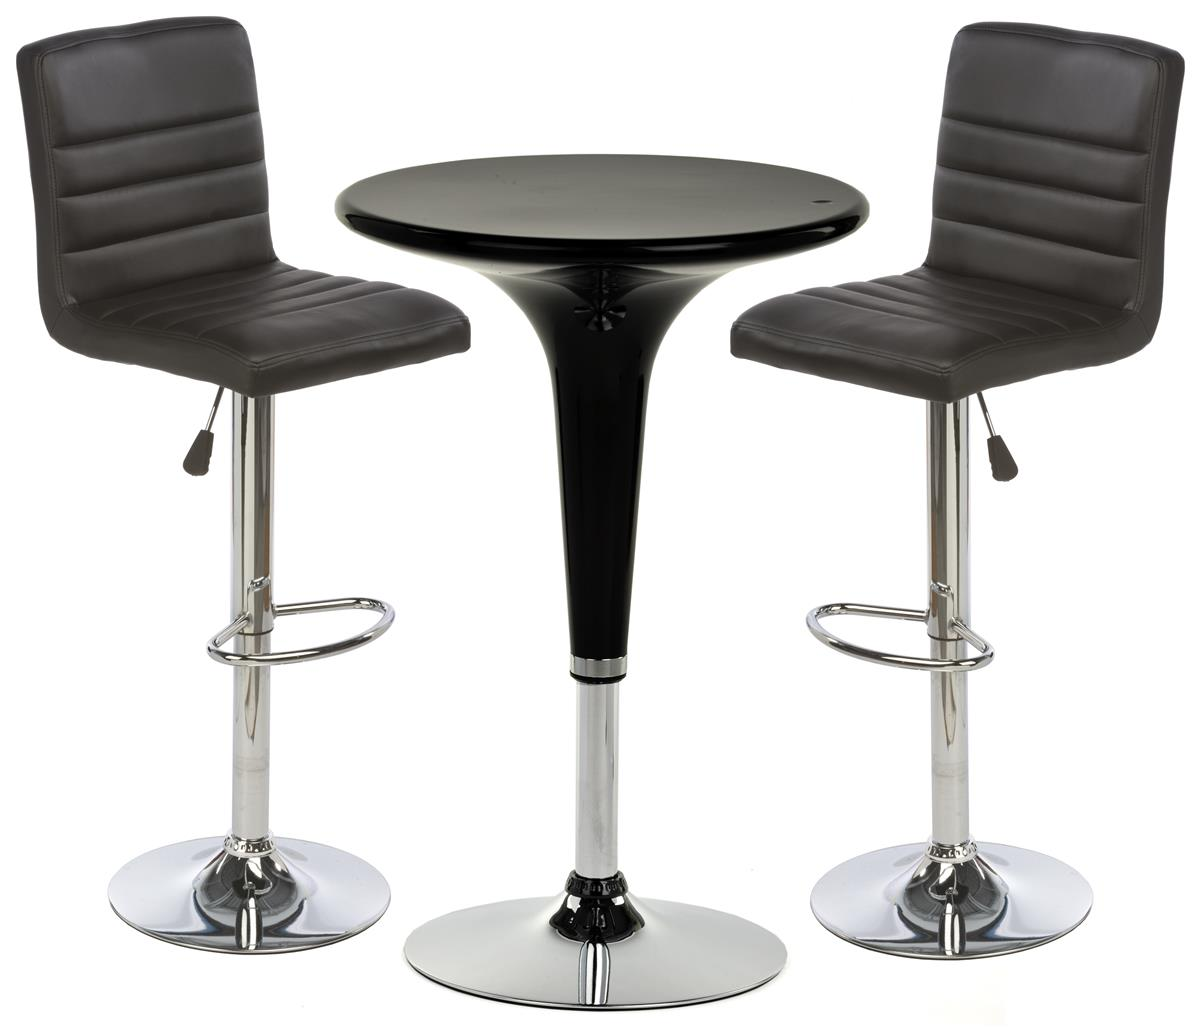 Bar Stool And Table Sets Round Tabletop